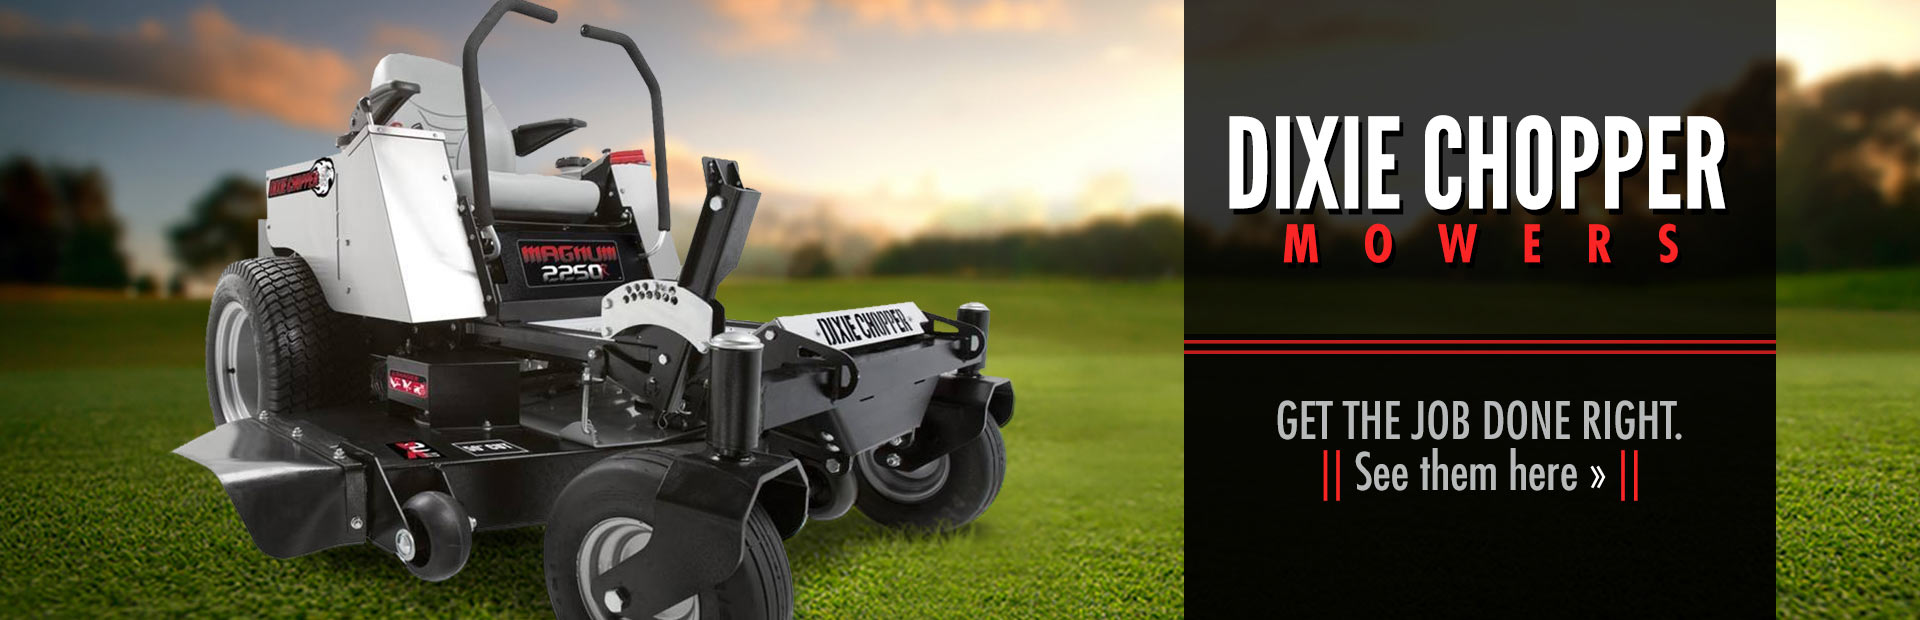 Dixie Chopper Mowers: See them here!